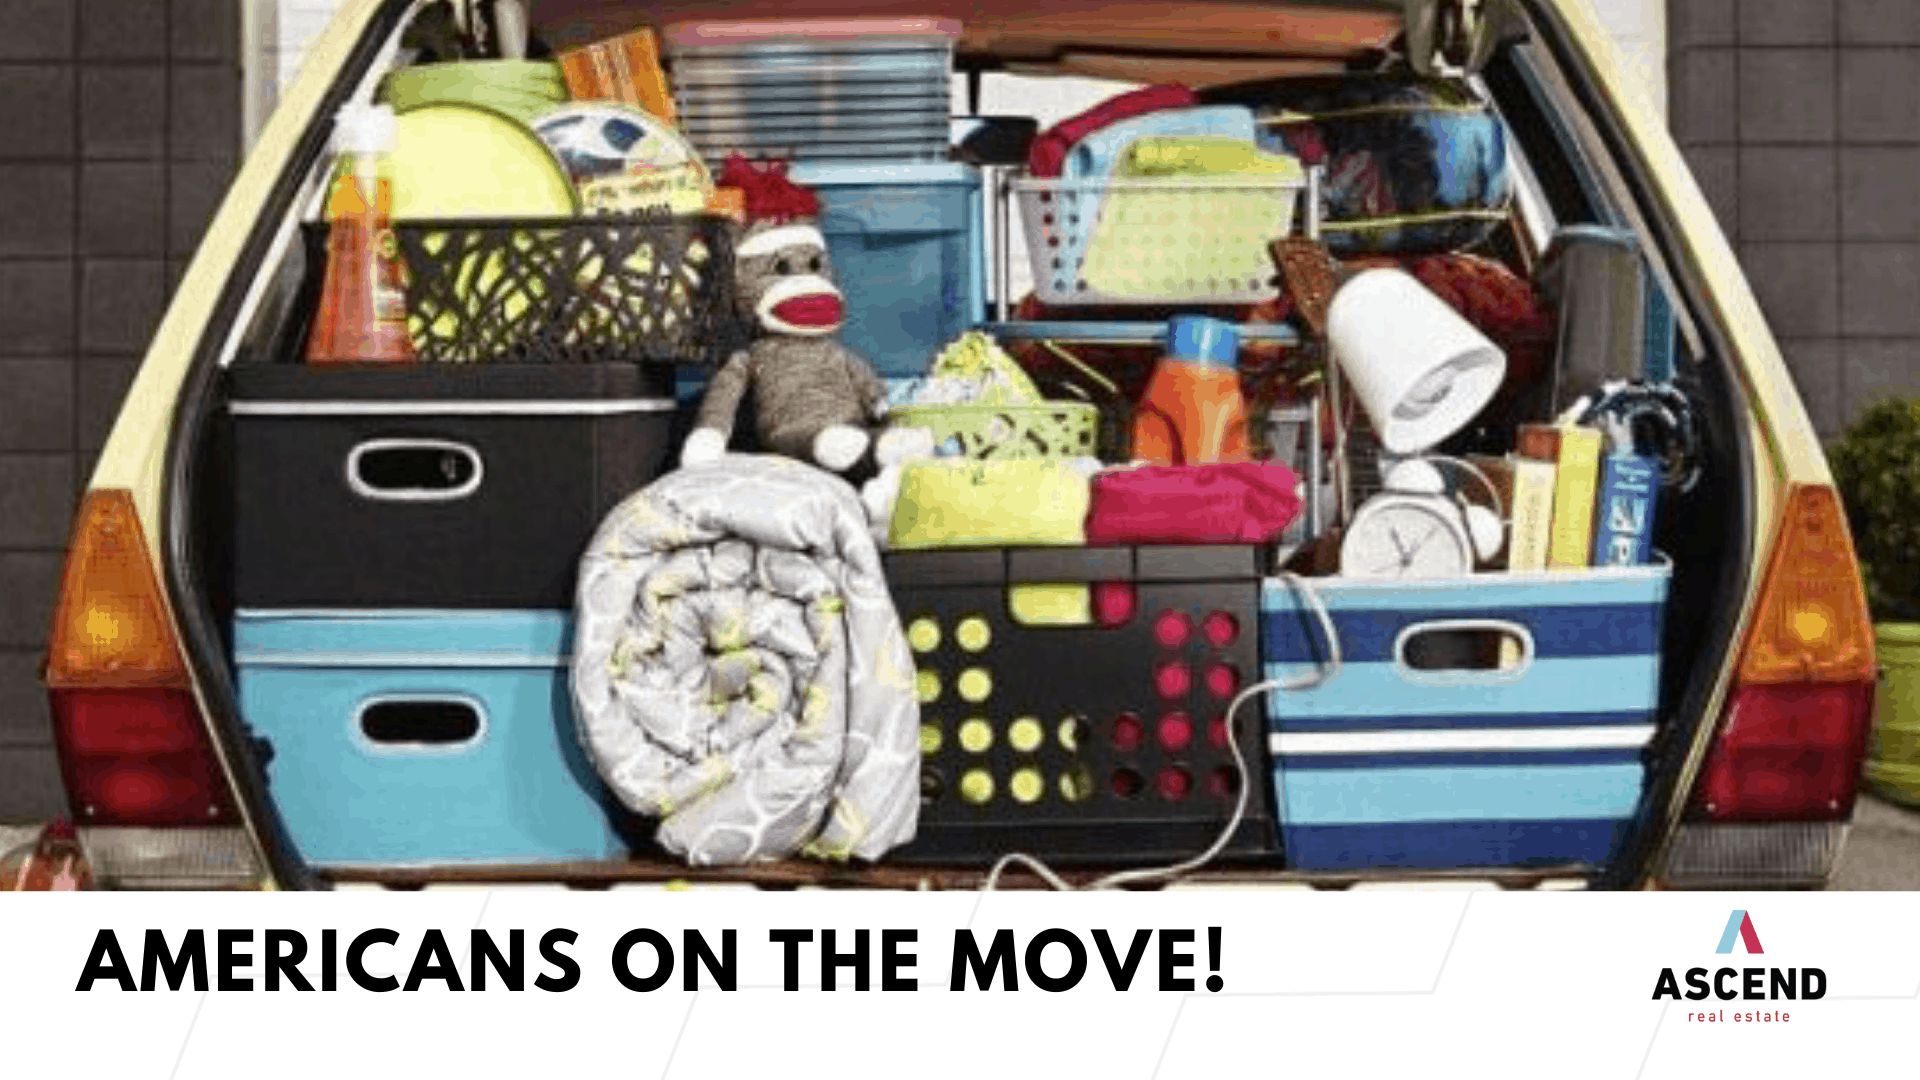 Americans on the Move!